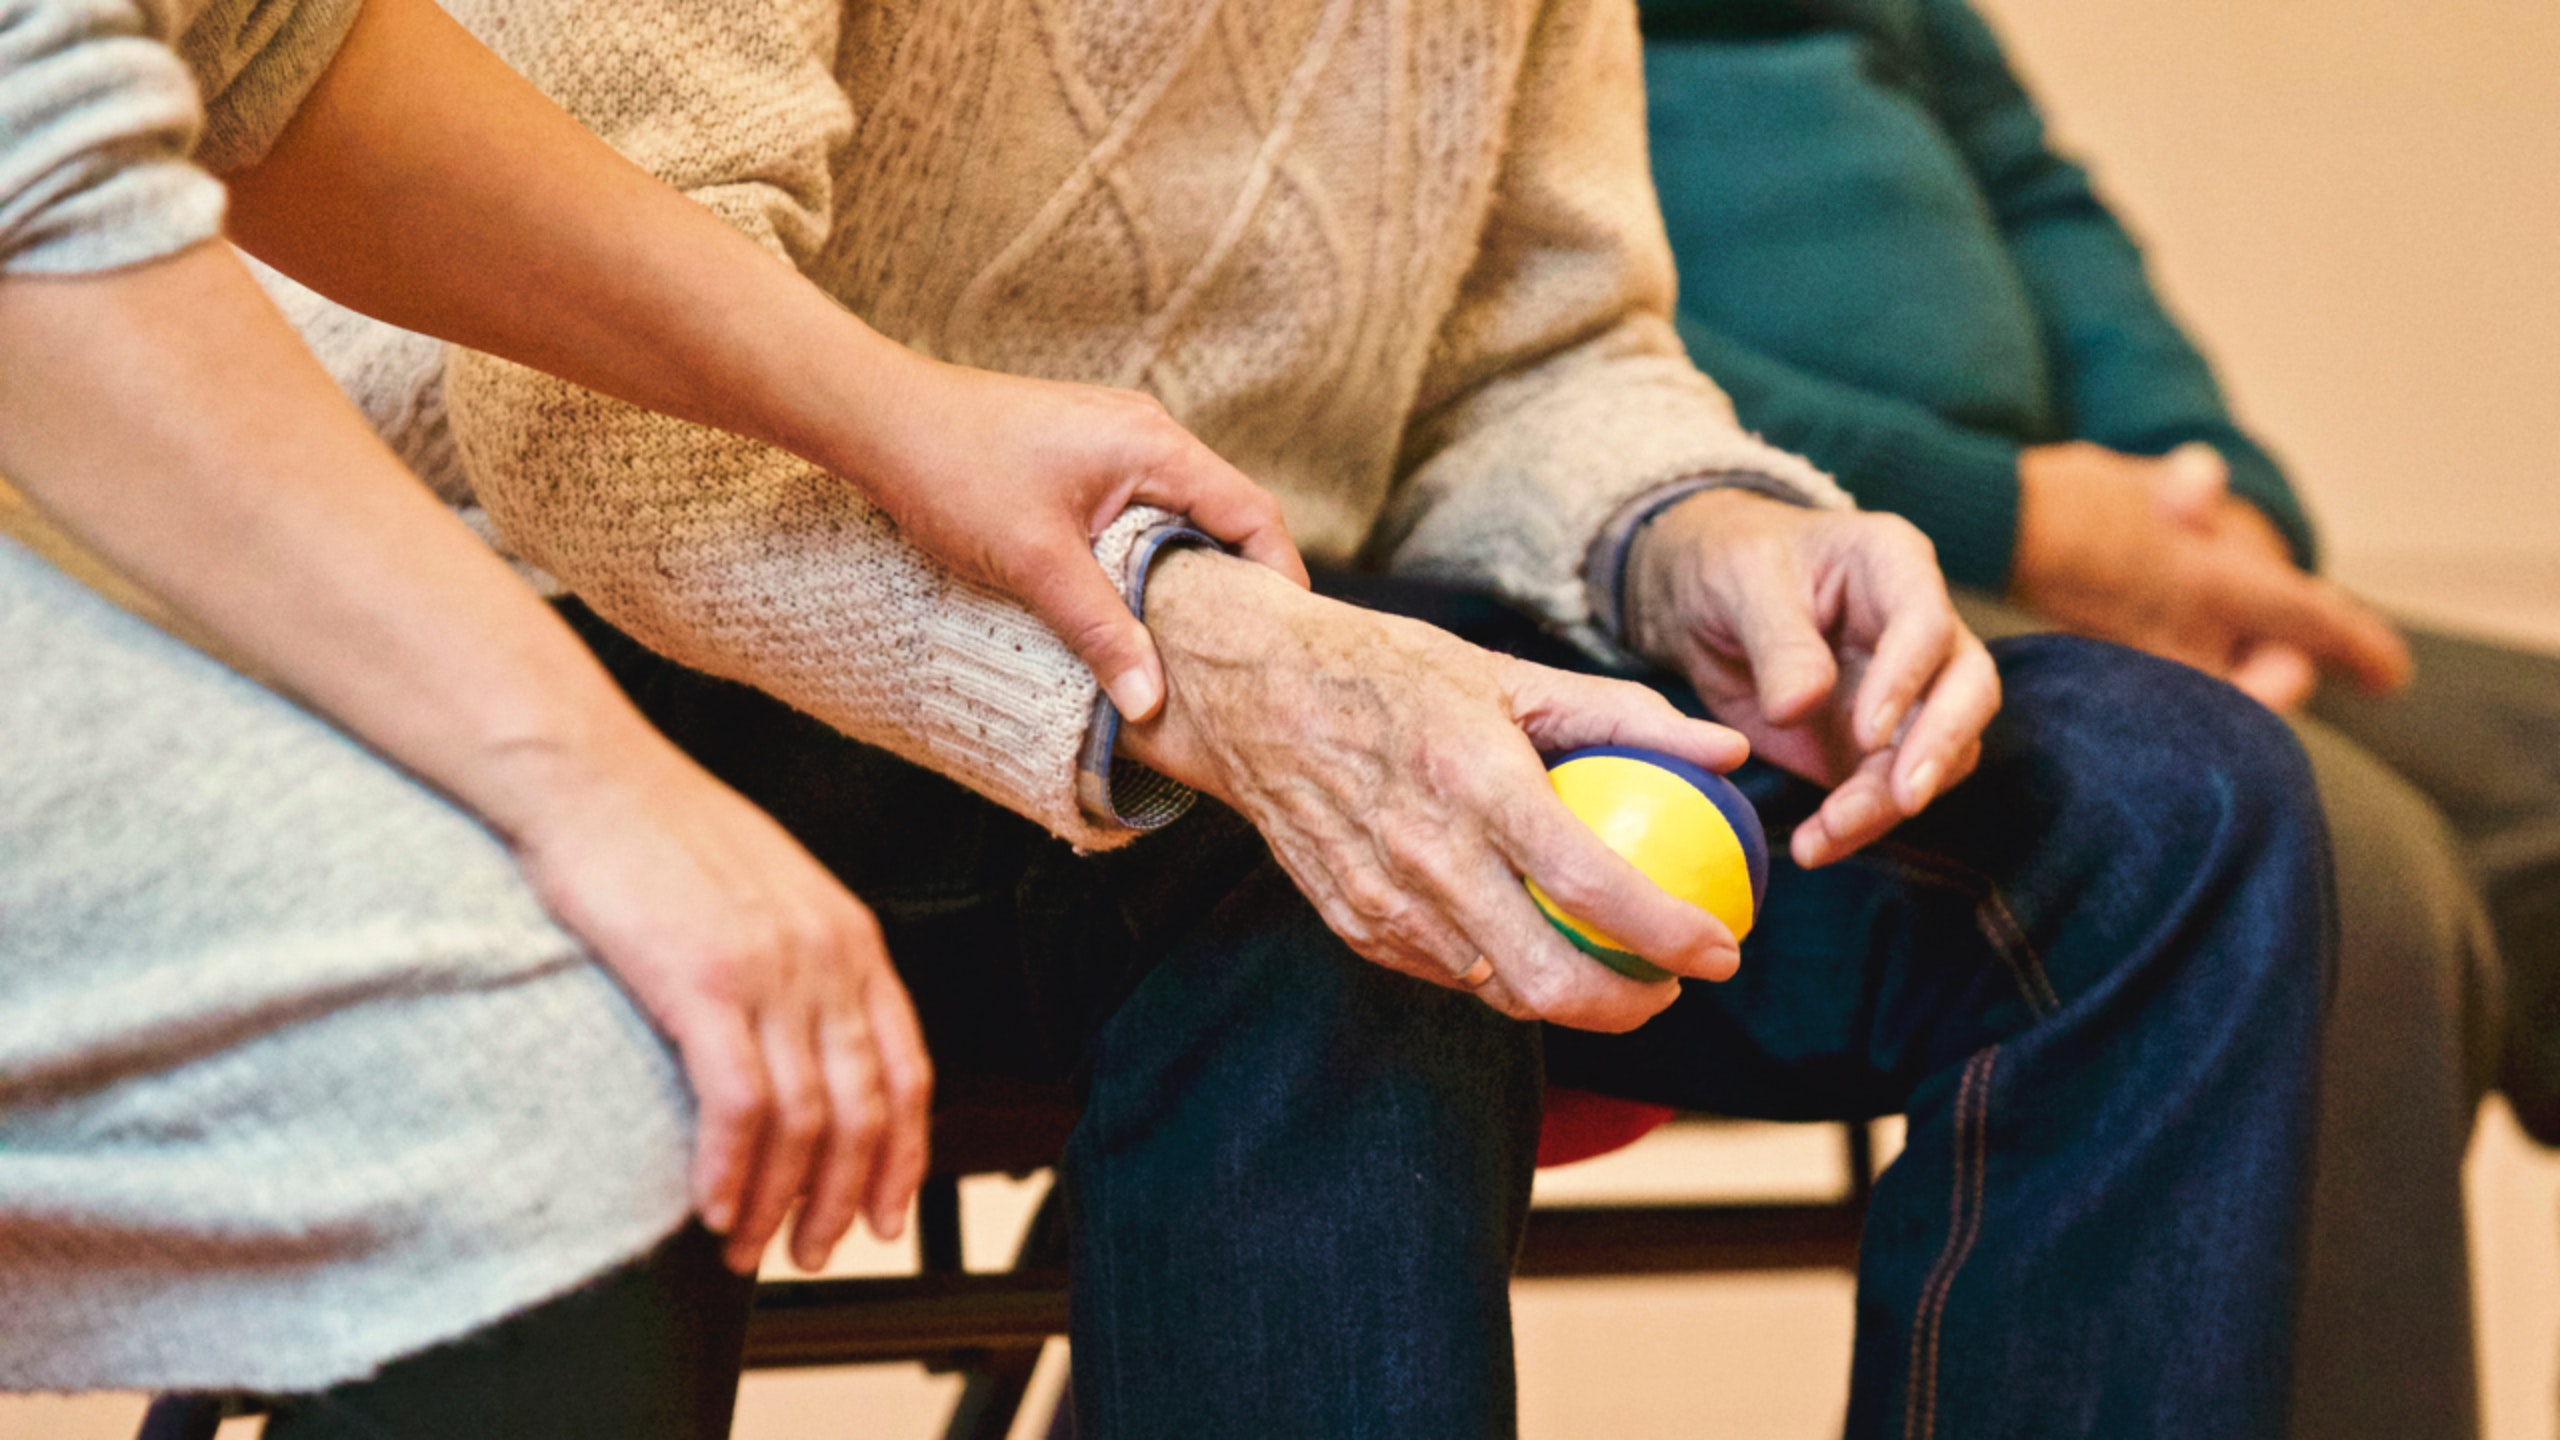 Older adult gripping a ball with another person gently holding his arm.